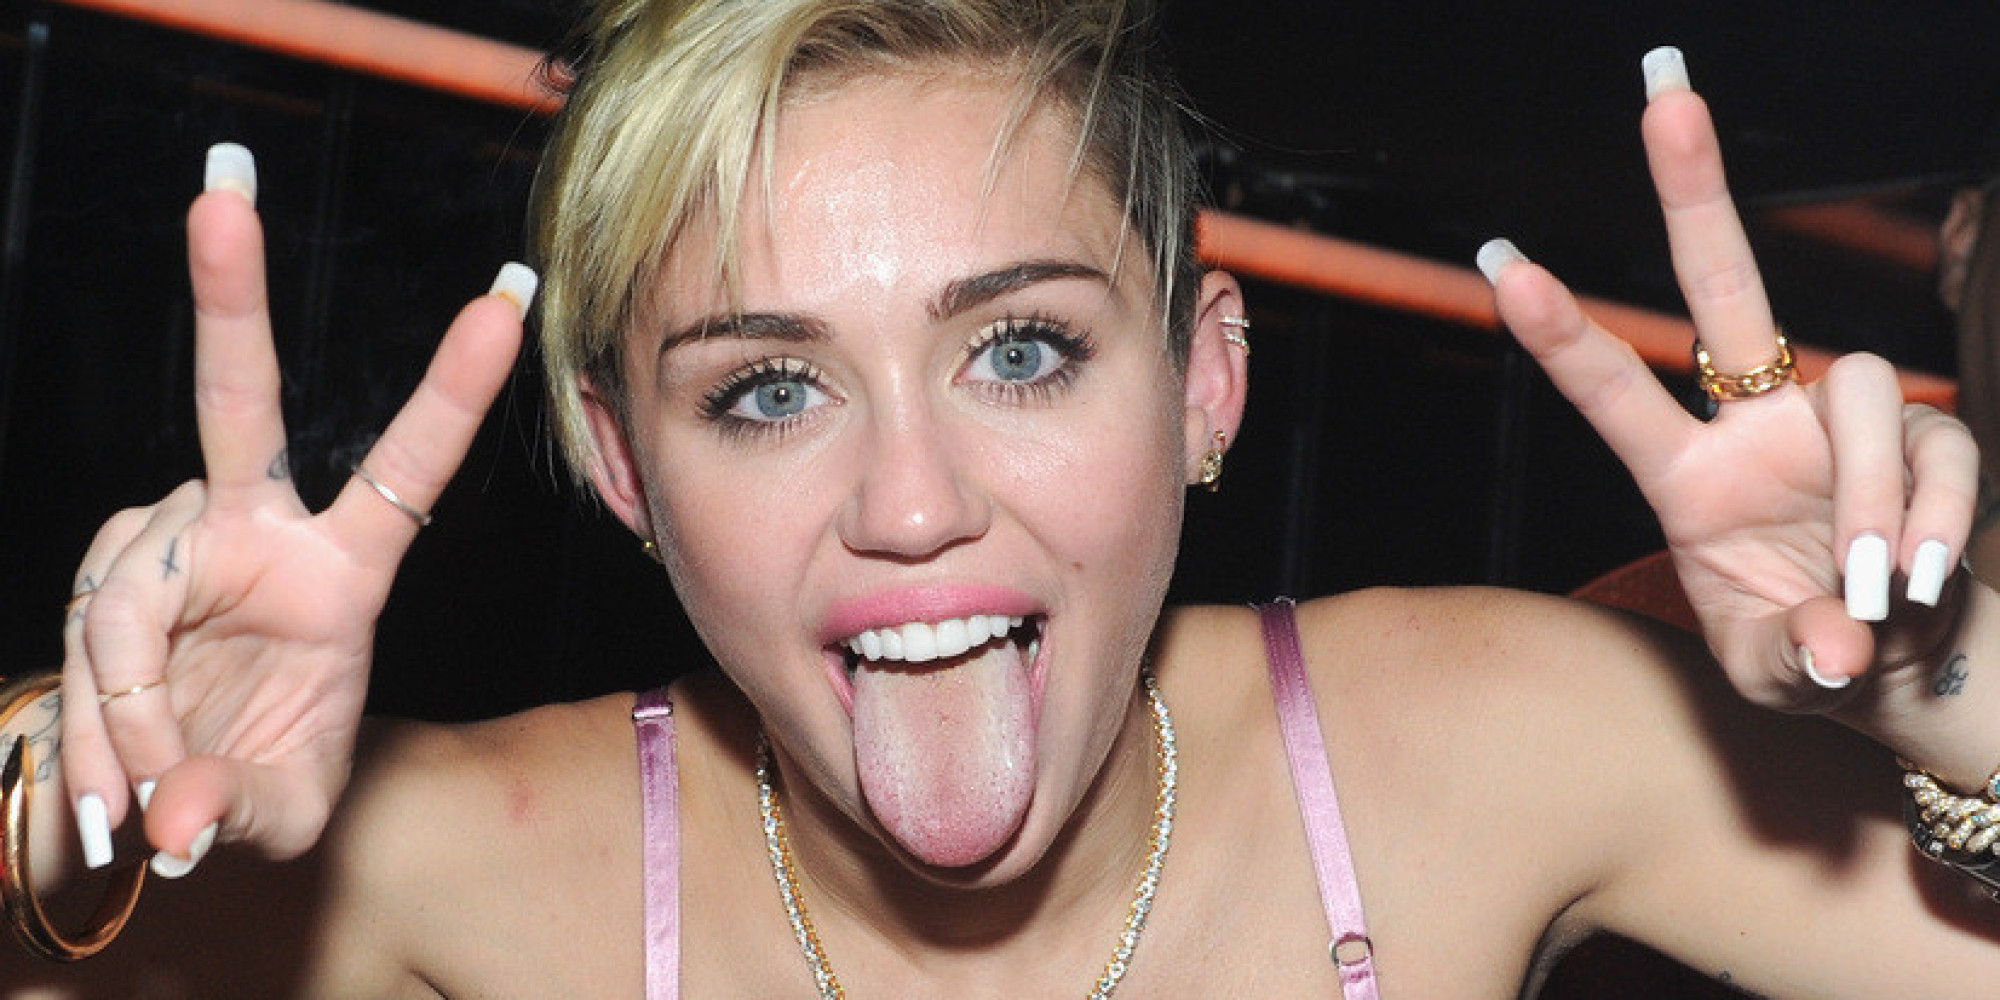 Miley cyrus fucking and sucking cock nude photos